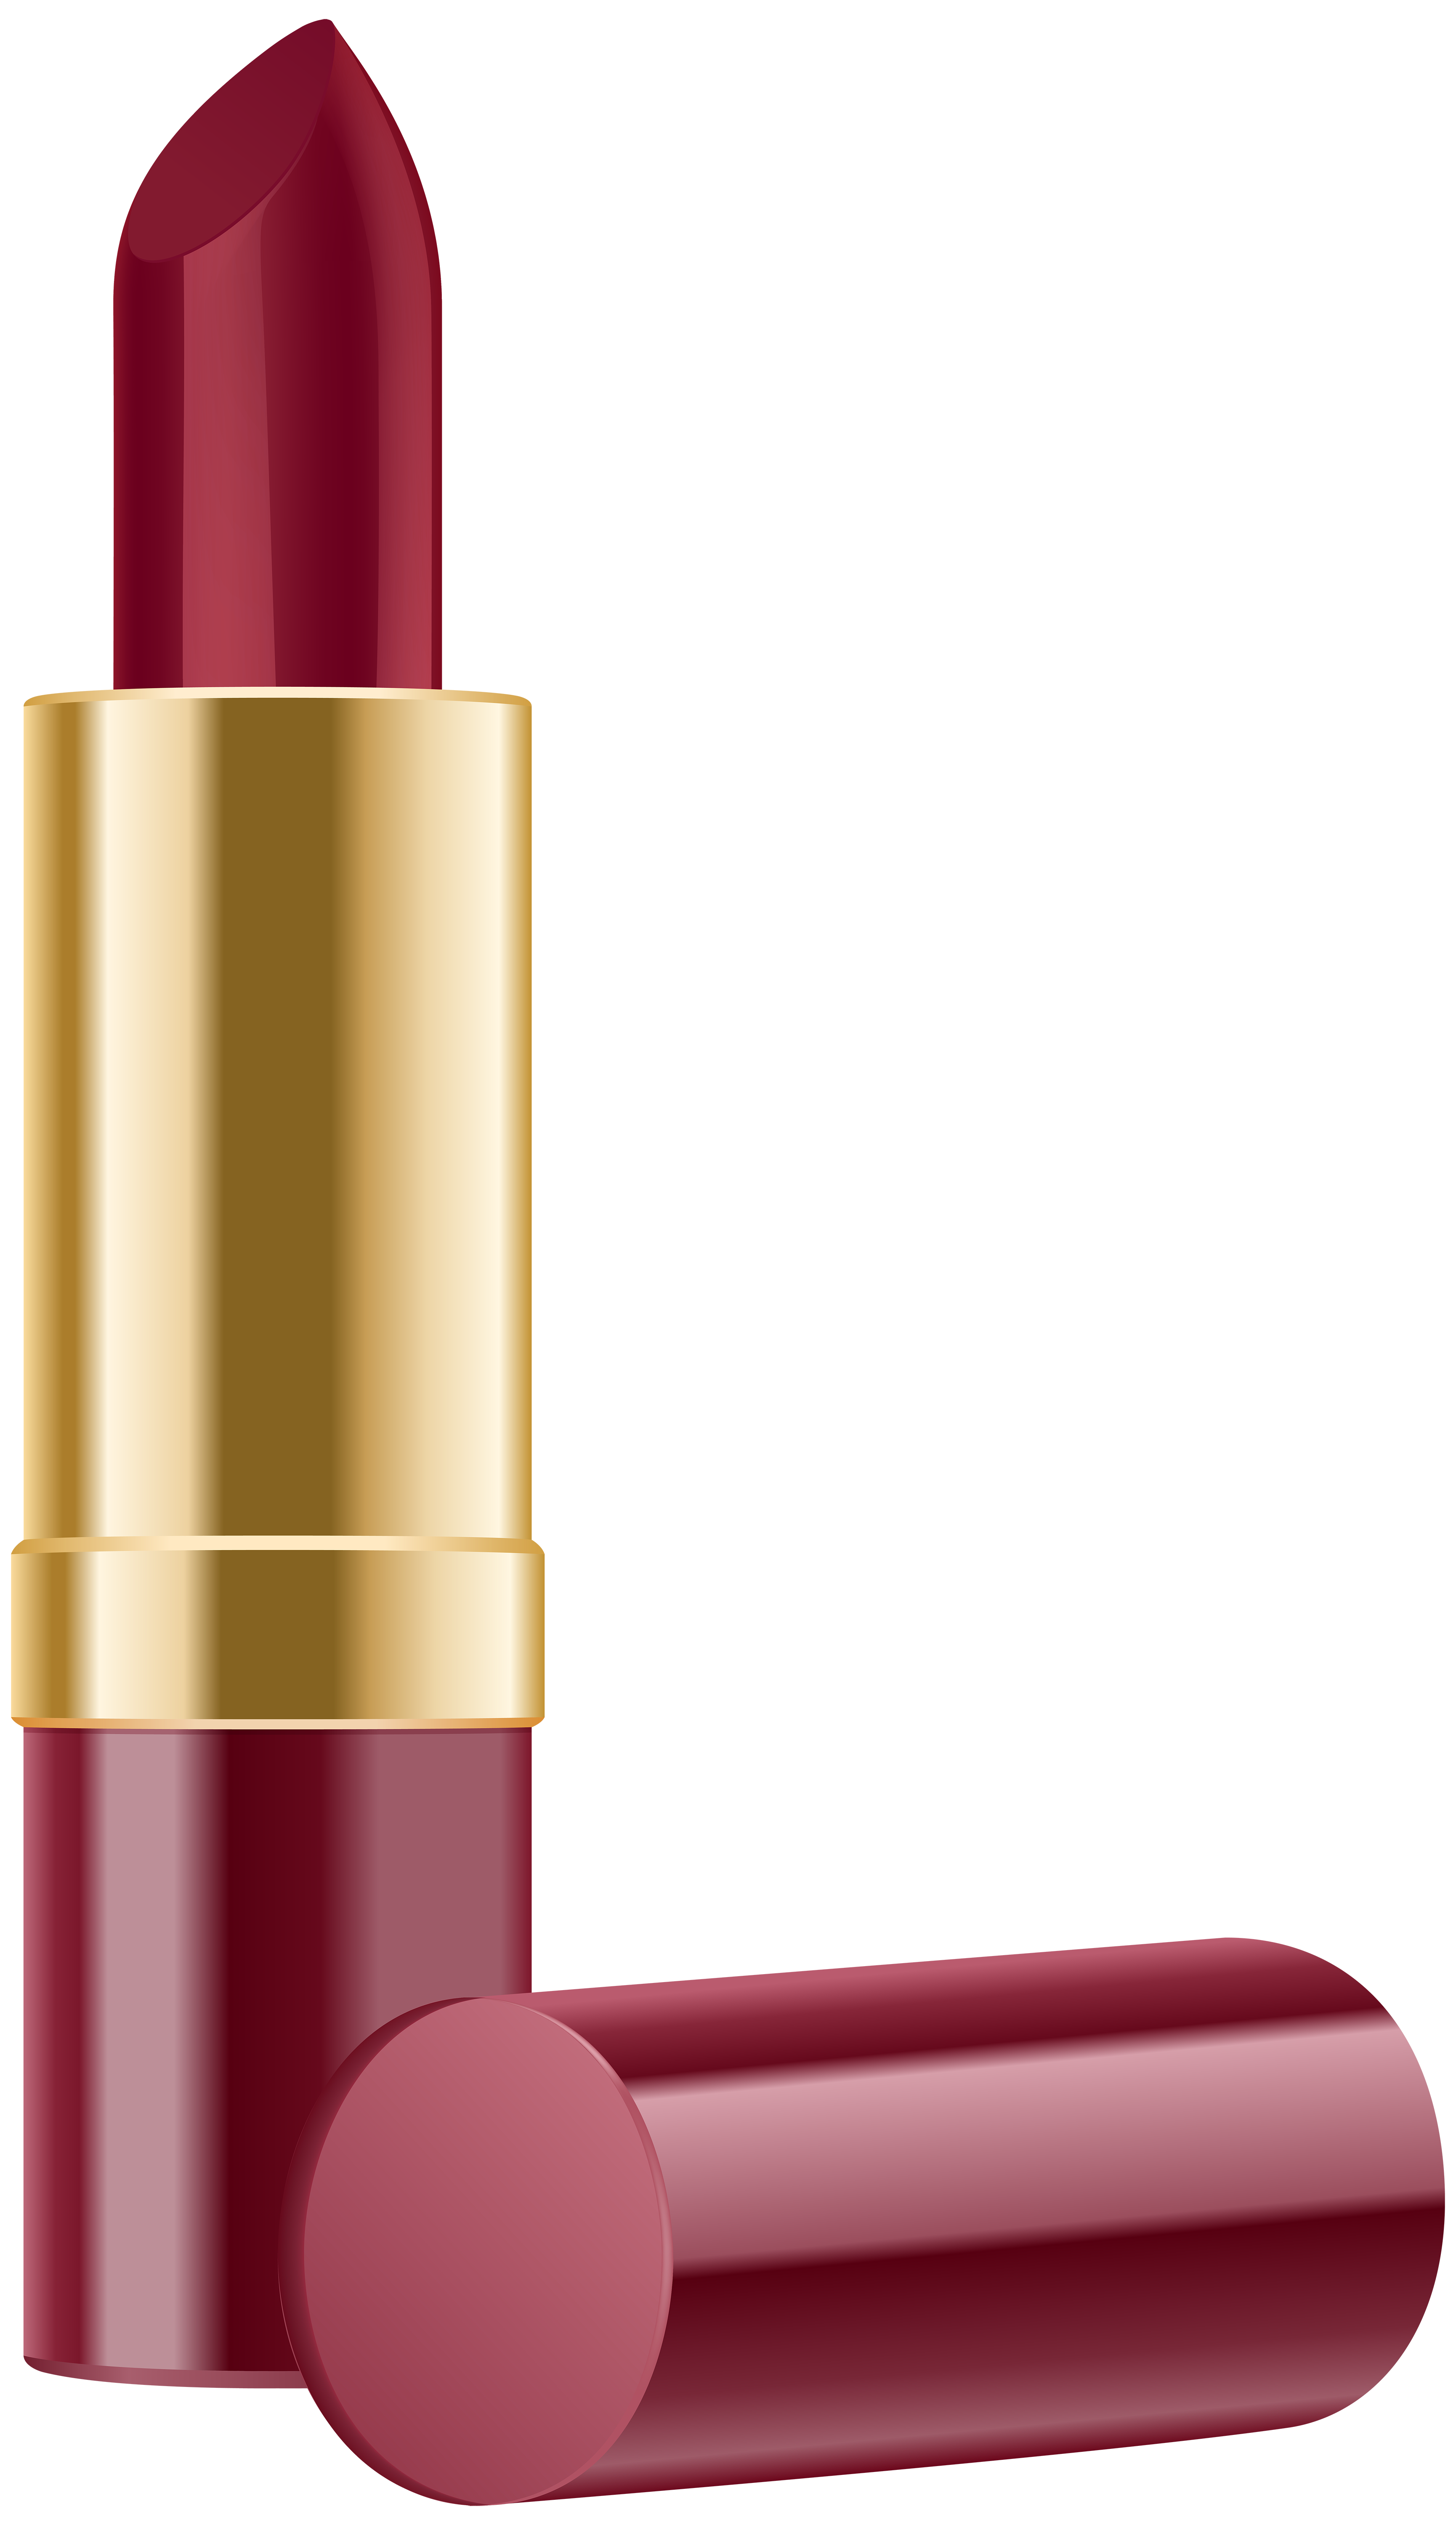 Red lipstick png. Clip art image gallery